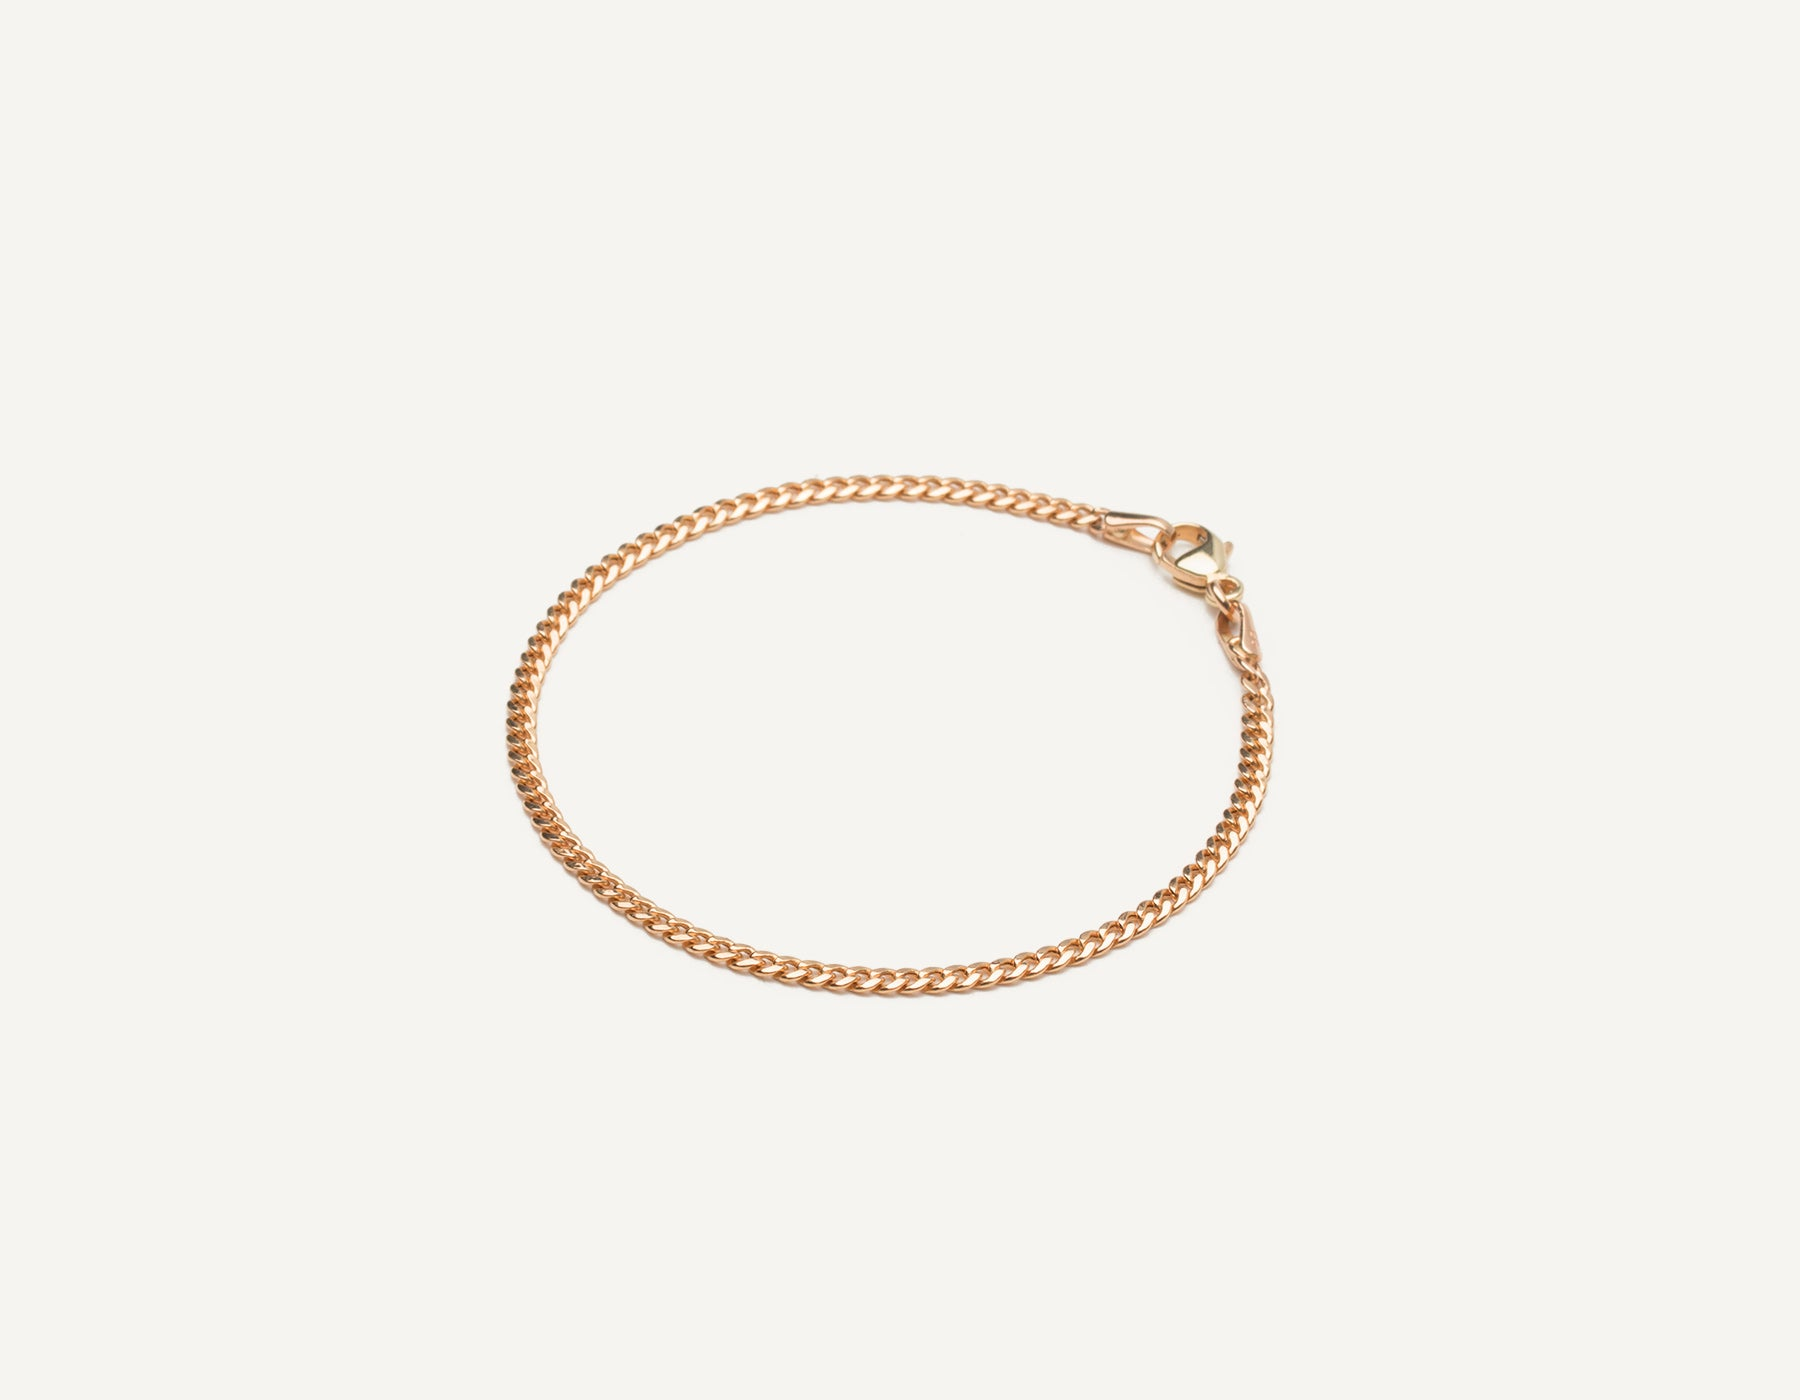 Vrai & Oro 14k solid gold modern minimalist Cuban Link bracelet with lobster clasp, 14K Rose Gold